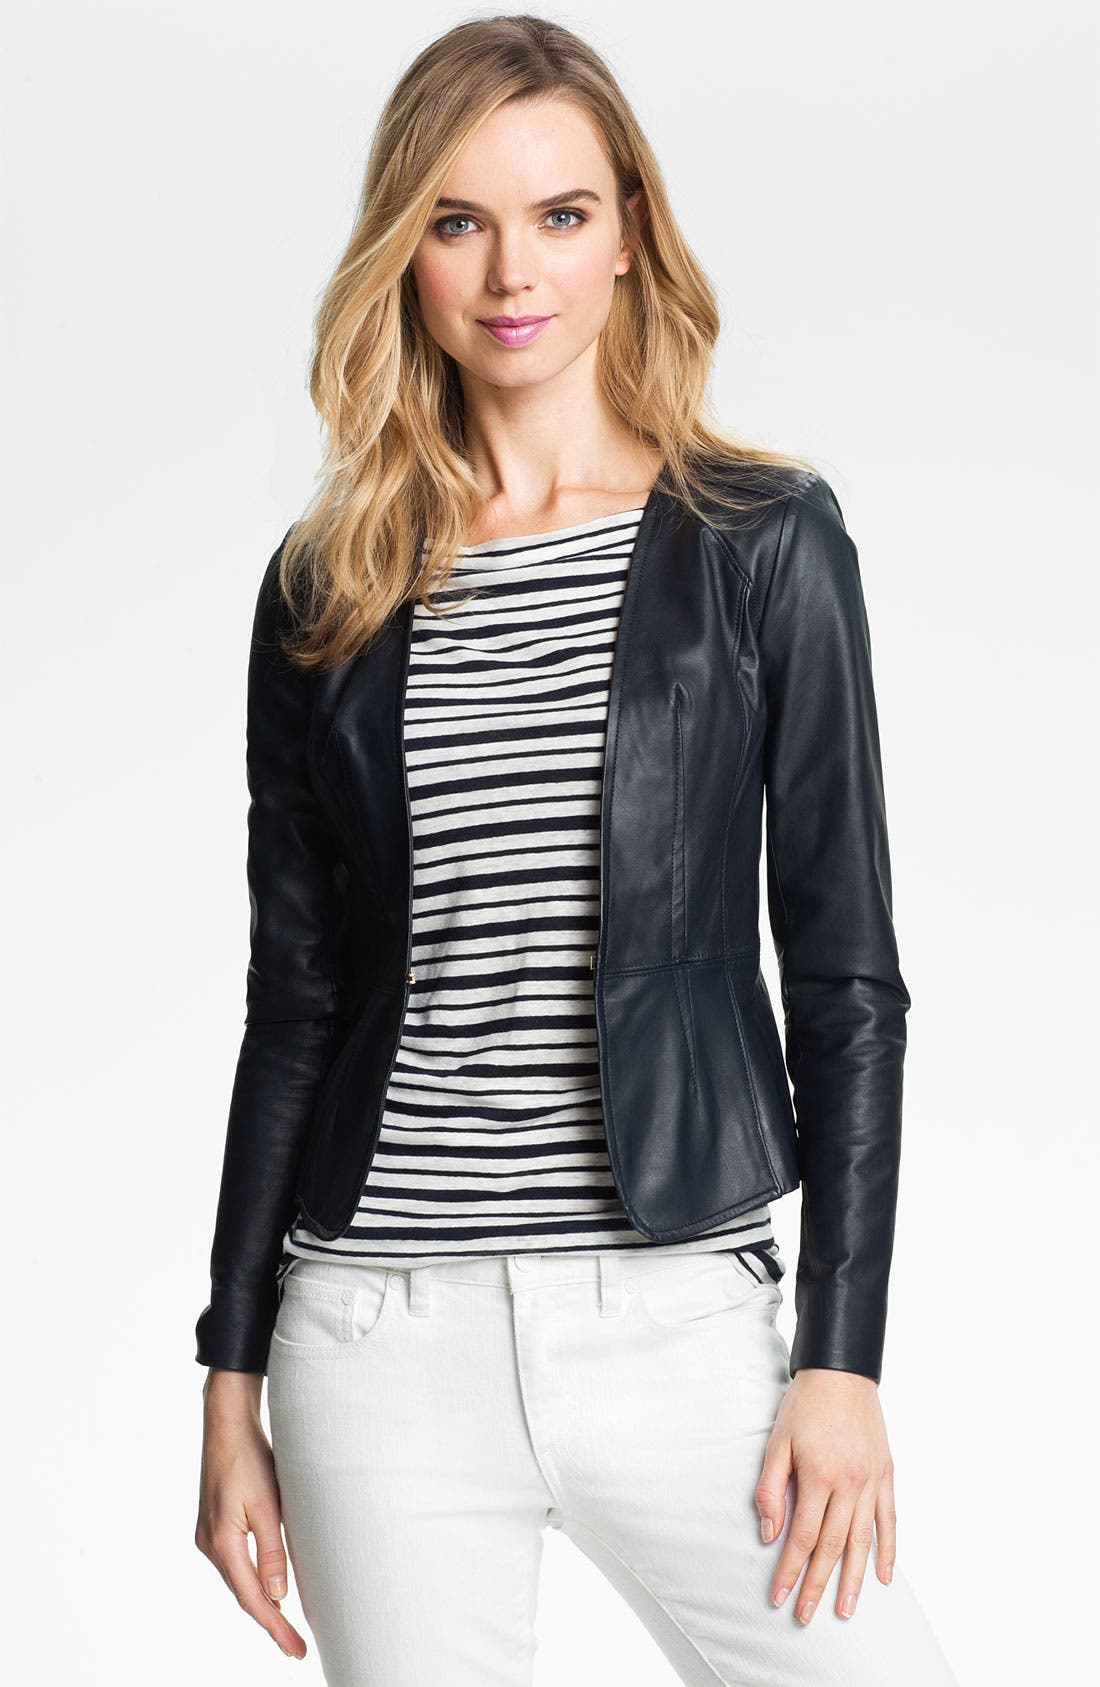 Main Image - Tory Burch 'Abby' Leather Jacket